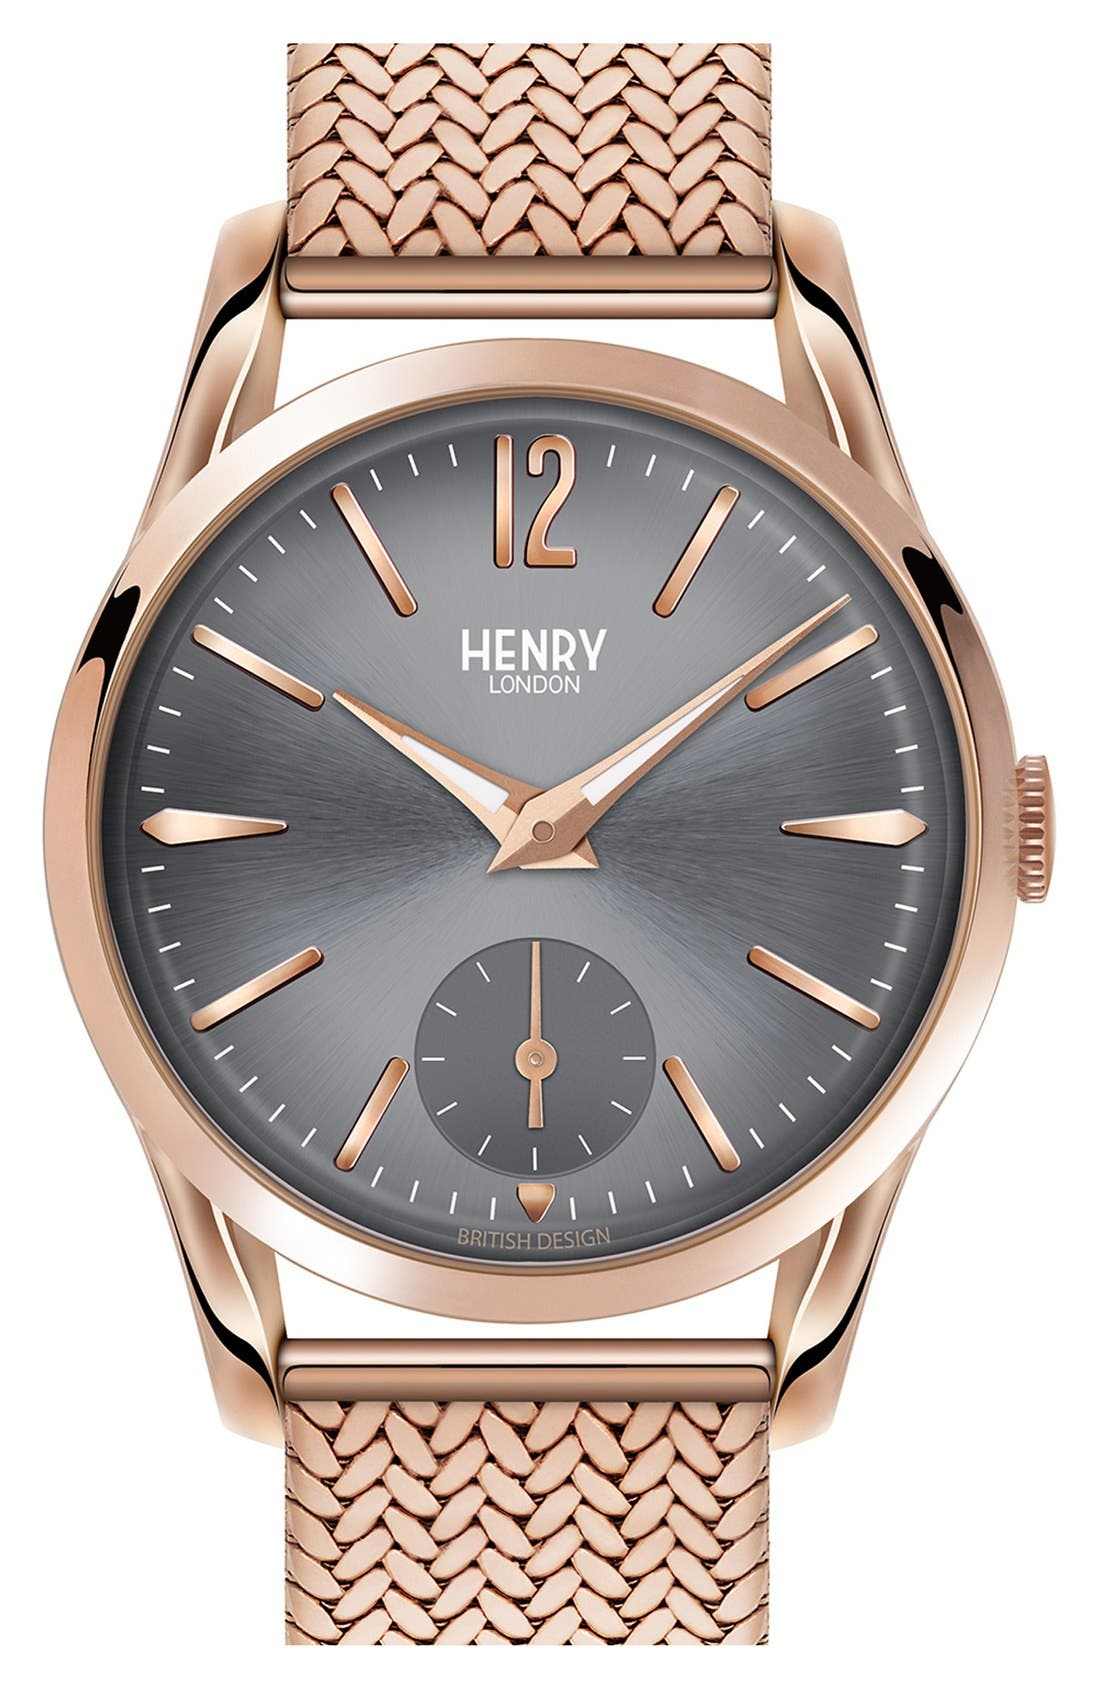 Henry London 'Finchley' Round Mesh Strap Watch, 30mm